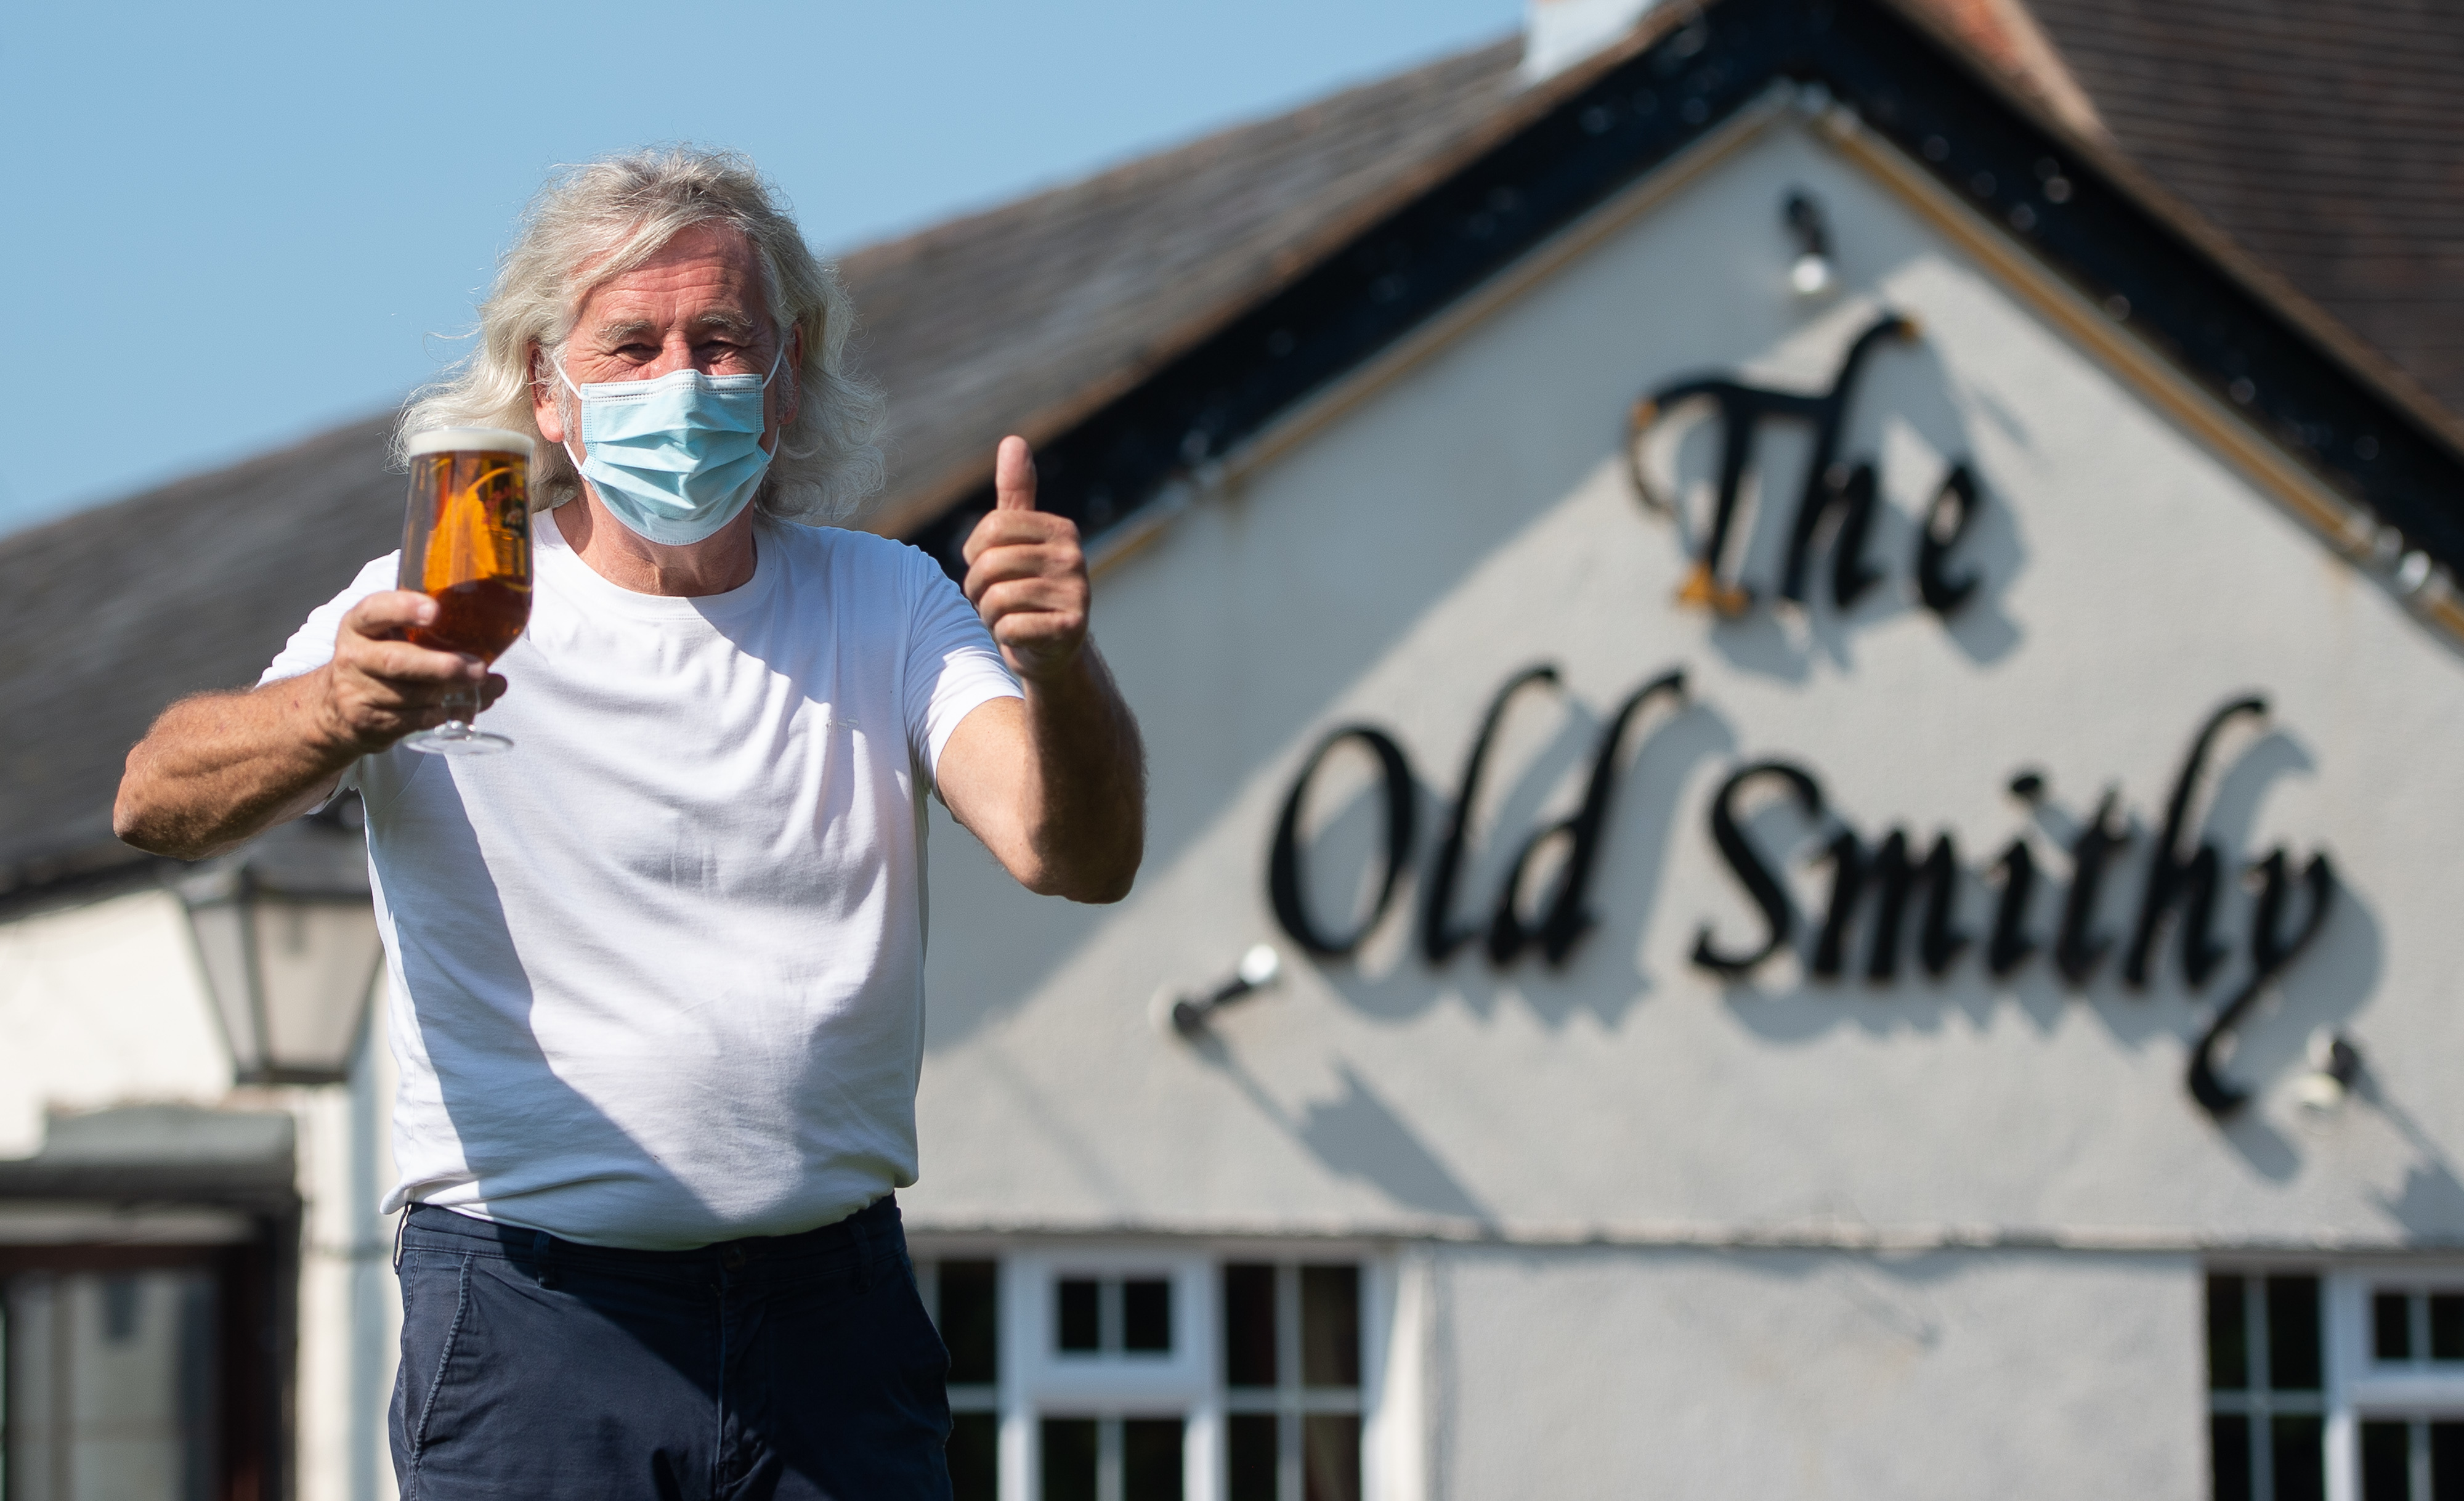 """Phil Weaver, owner of The Old Smithy in Church Lawford, Warwickshire as pub and hospitality bosses have cheered the Government's proposals to allow customers through their doors again on July 4 as """"a welcome relief""""."""